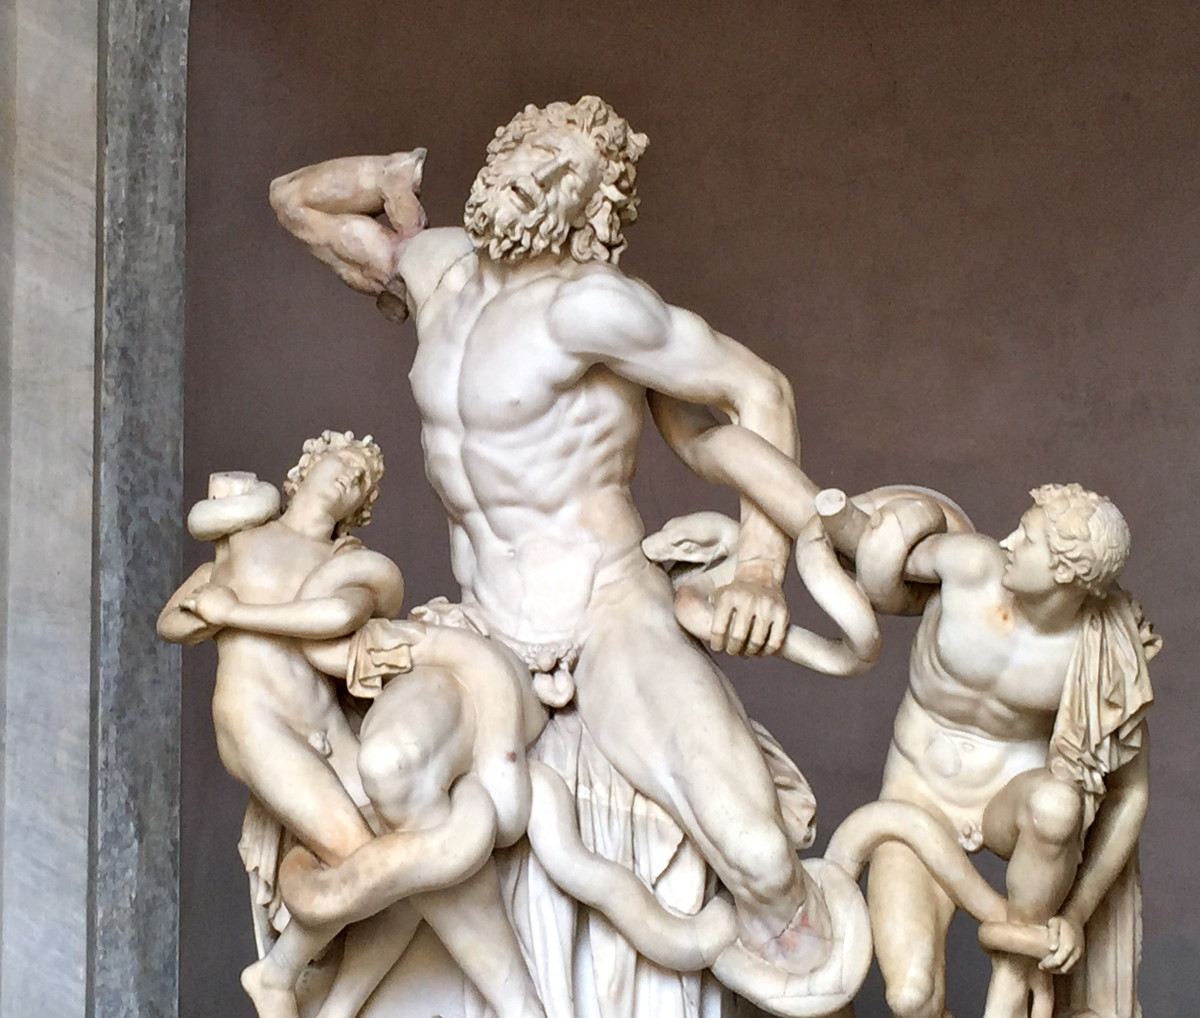 Laocoön estimated 40-30 B.C. (Pio Clementino Museum, Octagonal Court)